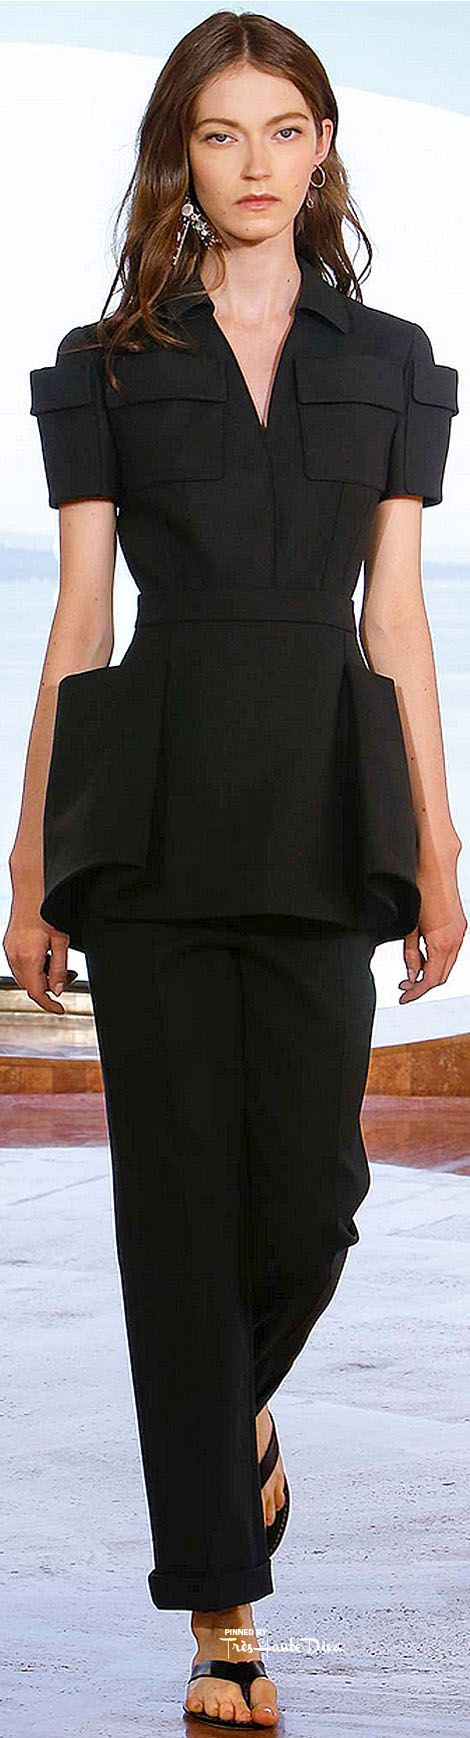 Christian Dior Resort 2016 Cannes--One huge zero, no pockets placed on hips, no woman wants their hips enlarged!